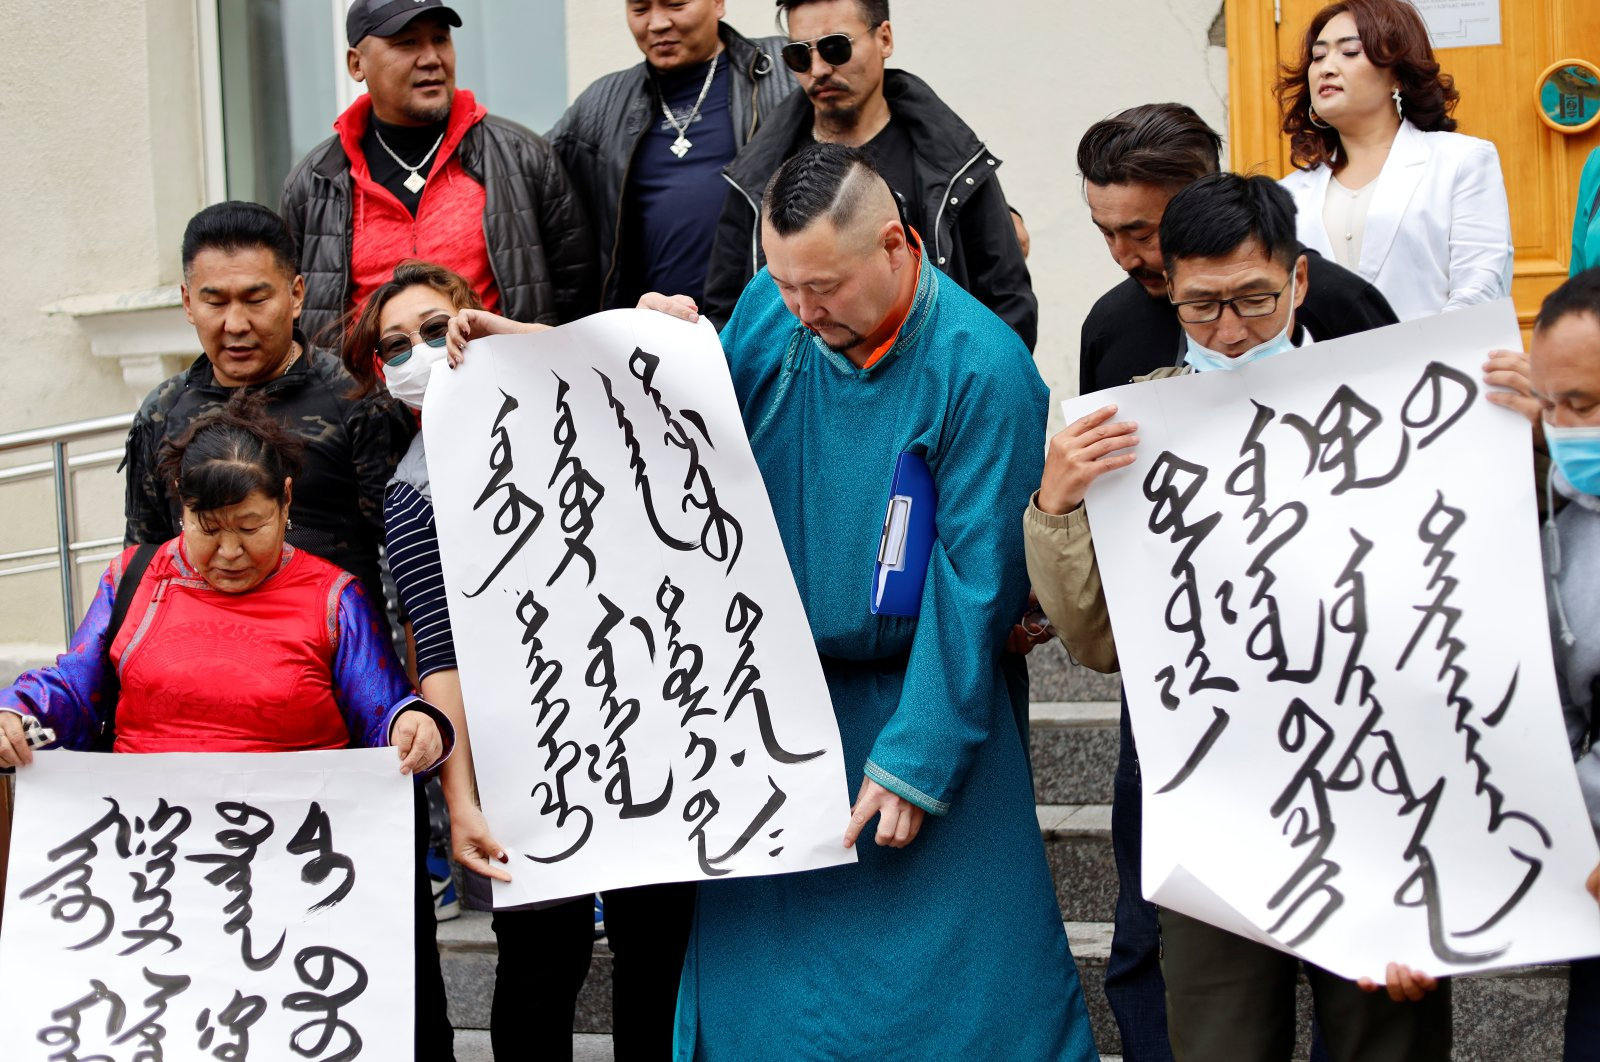 Demonstrators, holding signs with Mongolian script, protest against China's changes to school curriculums that remove Mongolian language from core subjects, outside the Mongolian Ministry of Foreign Affairs in Ulaanbaatar, Mongolia, Aug. 31, 2020. (Reuters Photo)